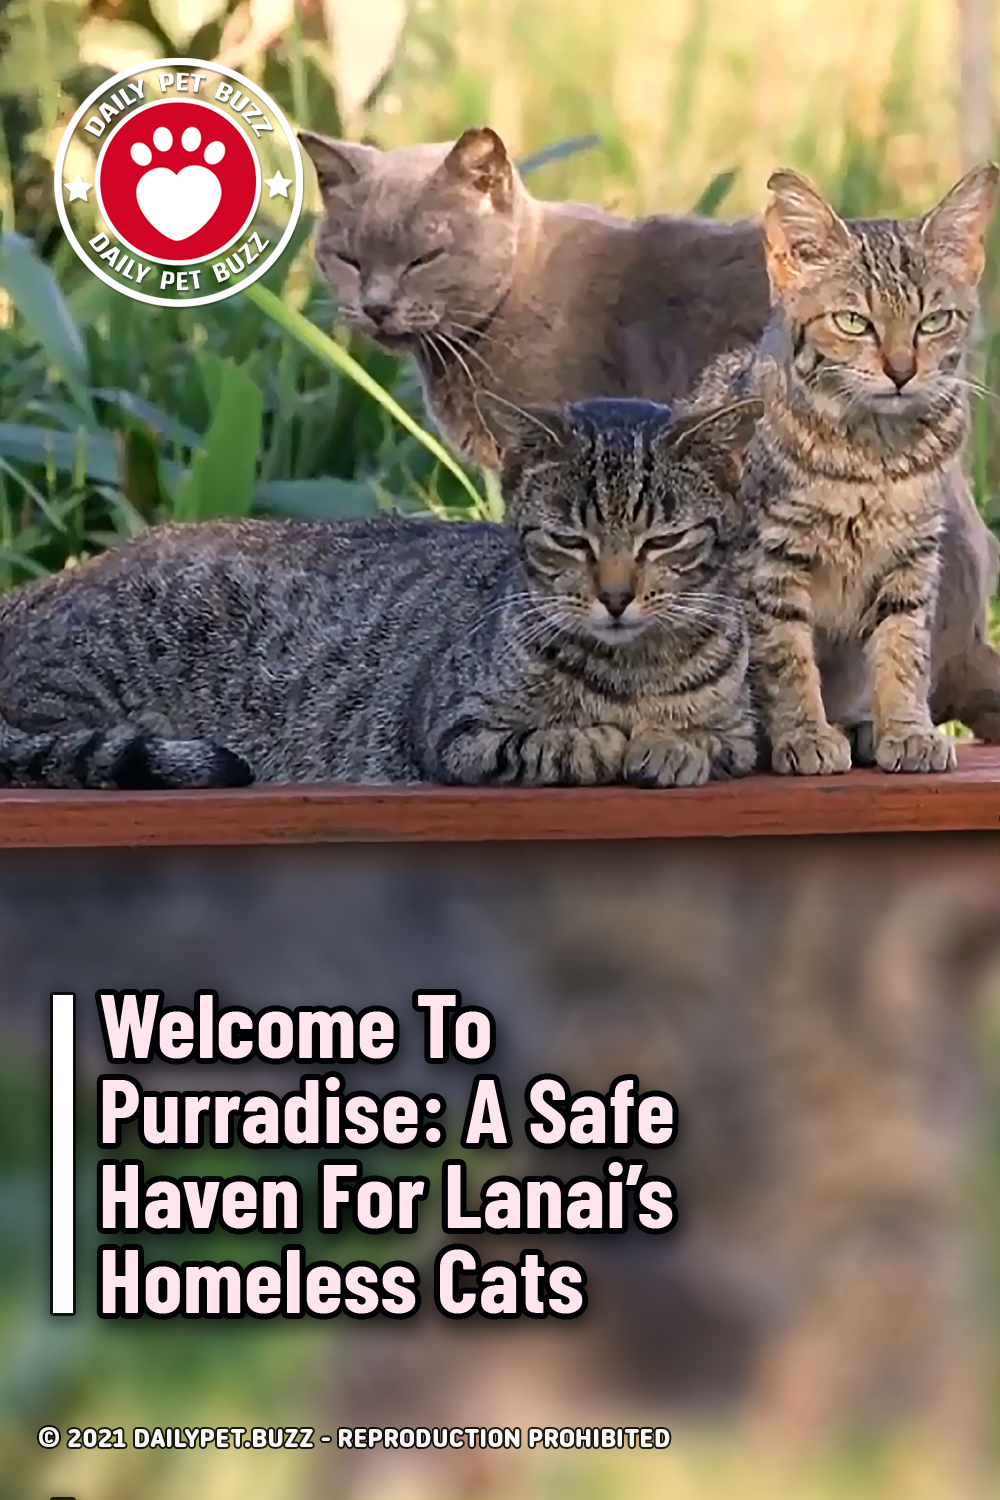 Welcome To Purradise: A Safe Haven For Lanai's Homeless Cats